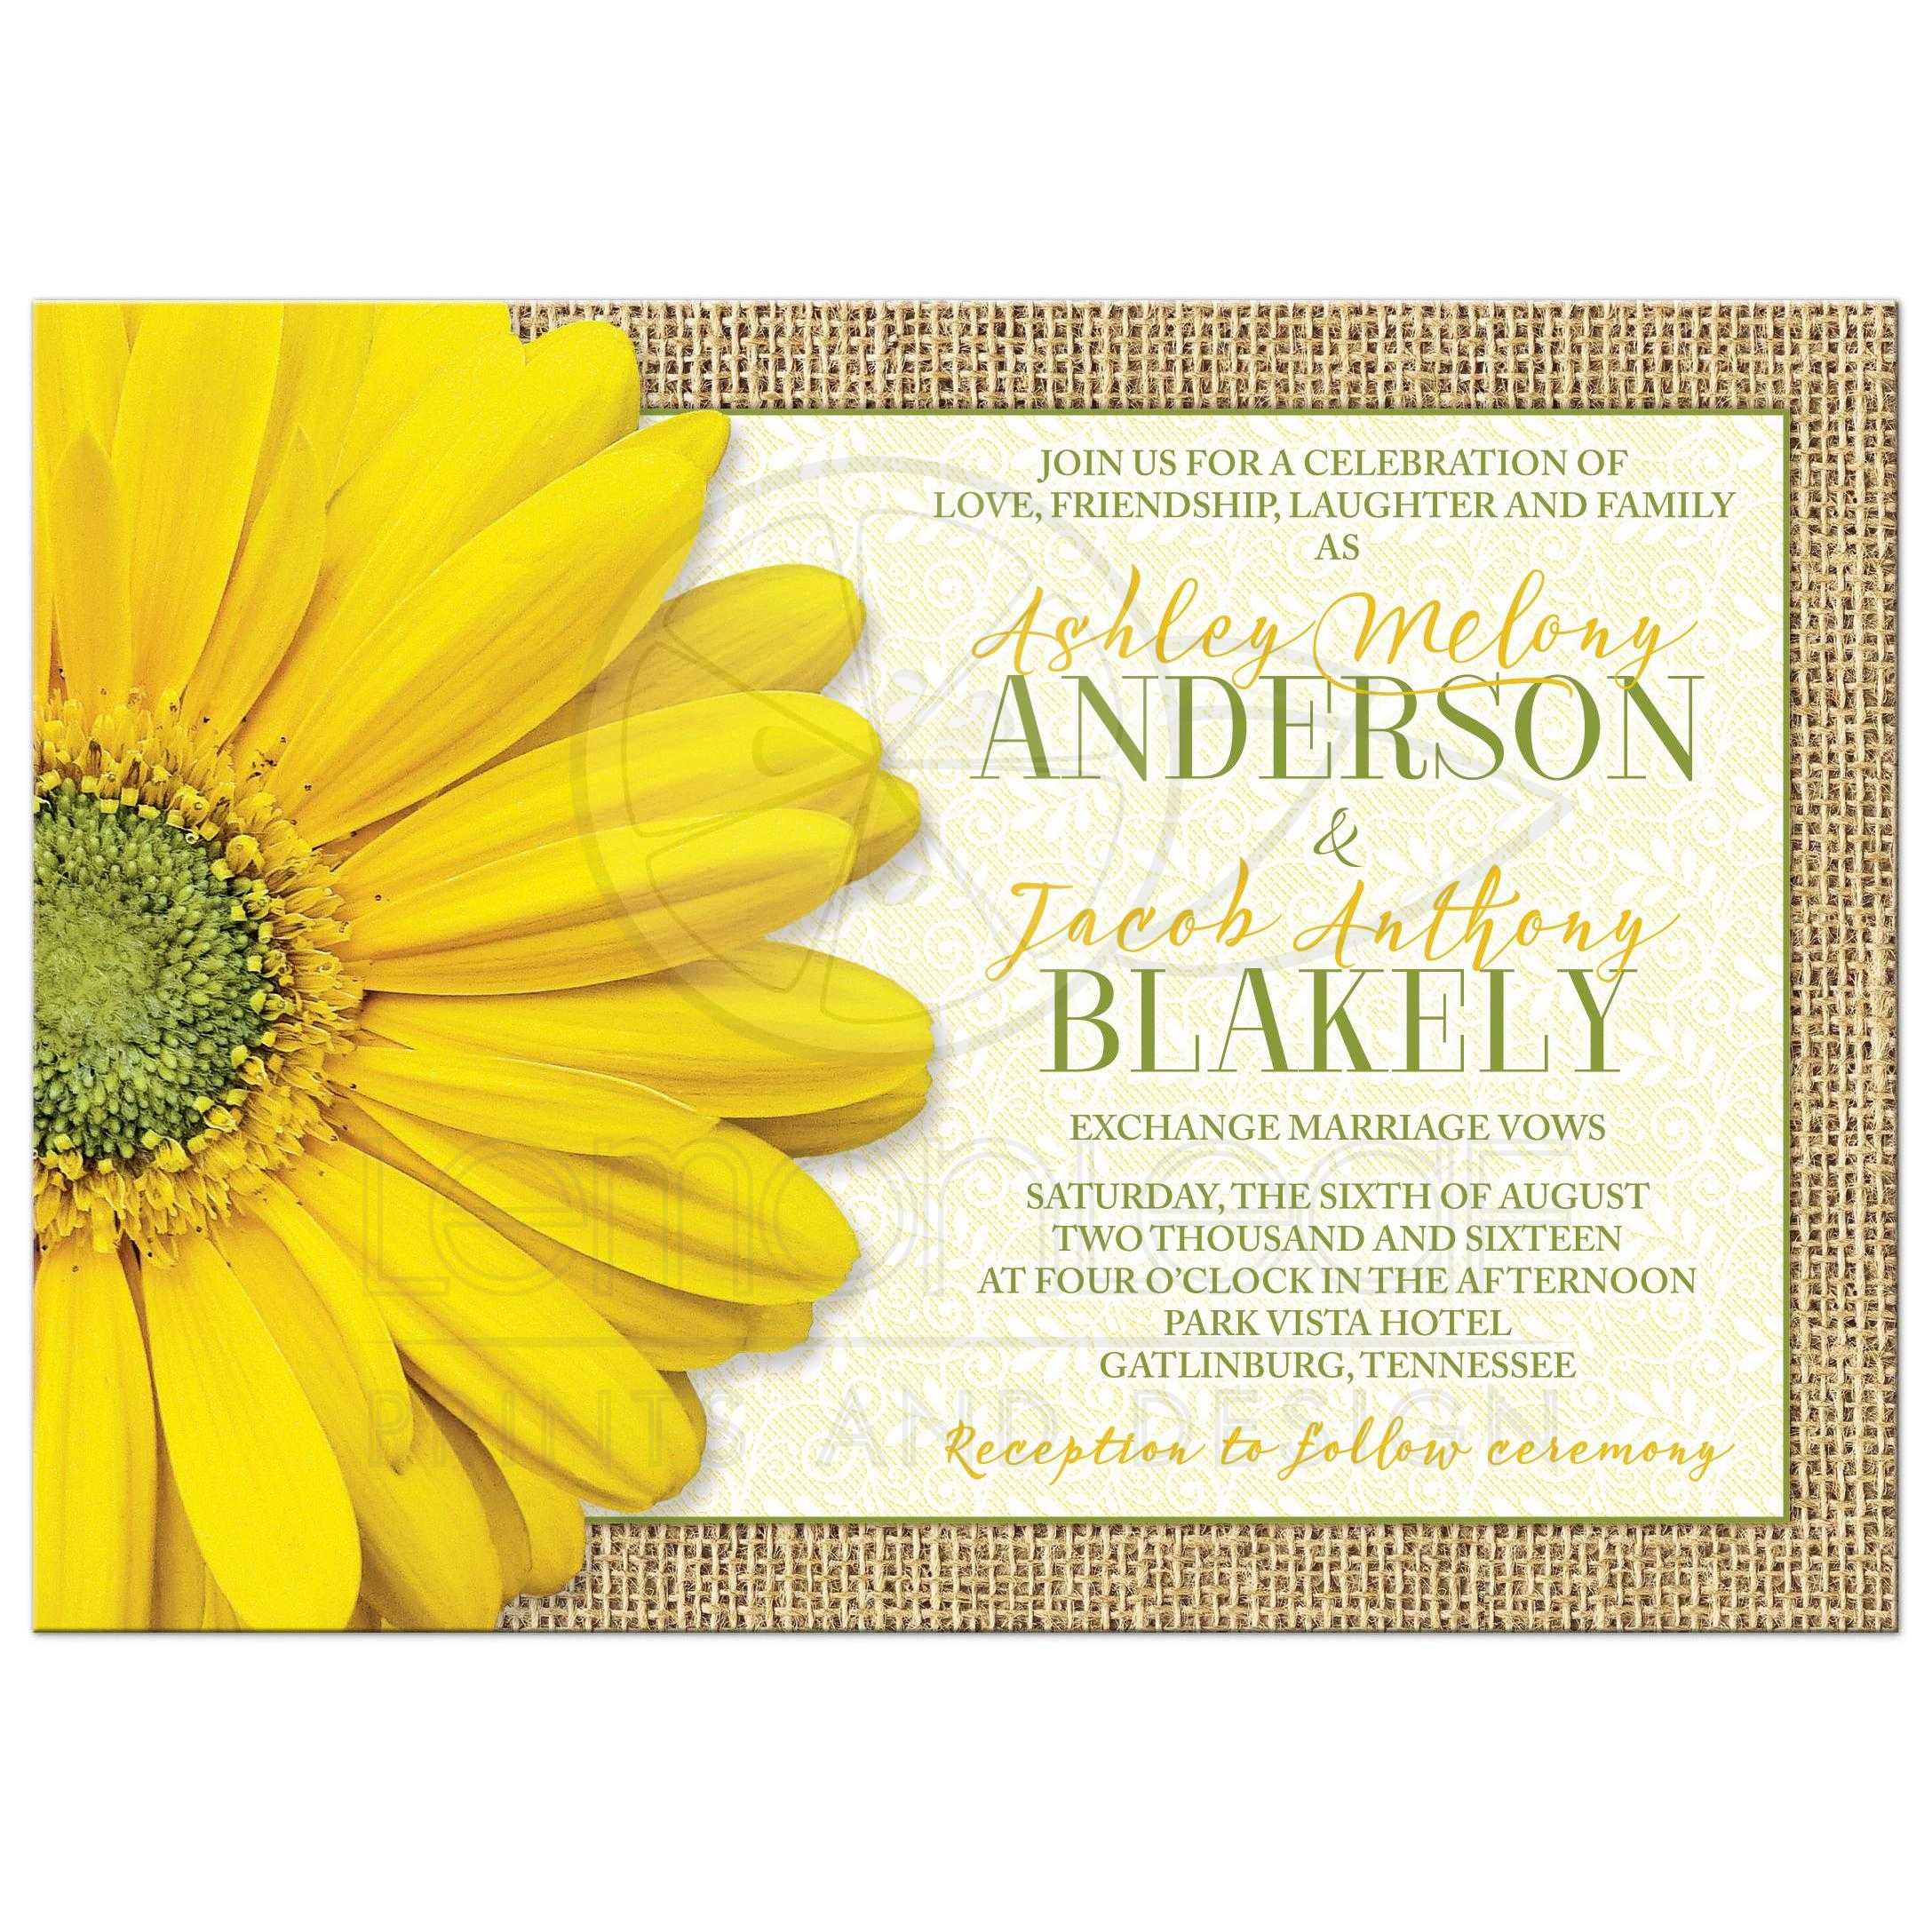 Rustic Daisy Wedding Invitations: Rustic Yellow Daisy Burlap Lace Wedding Invitation